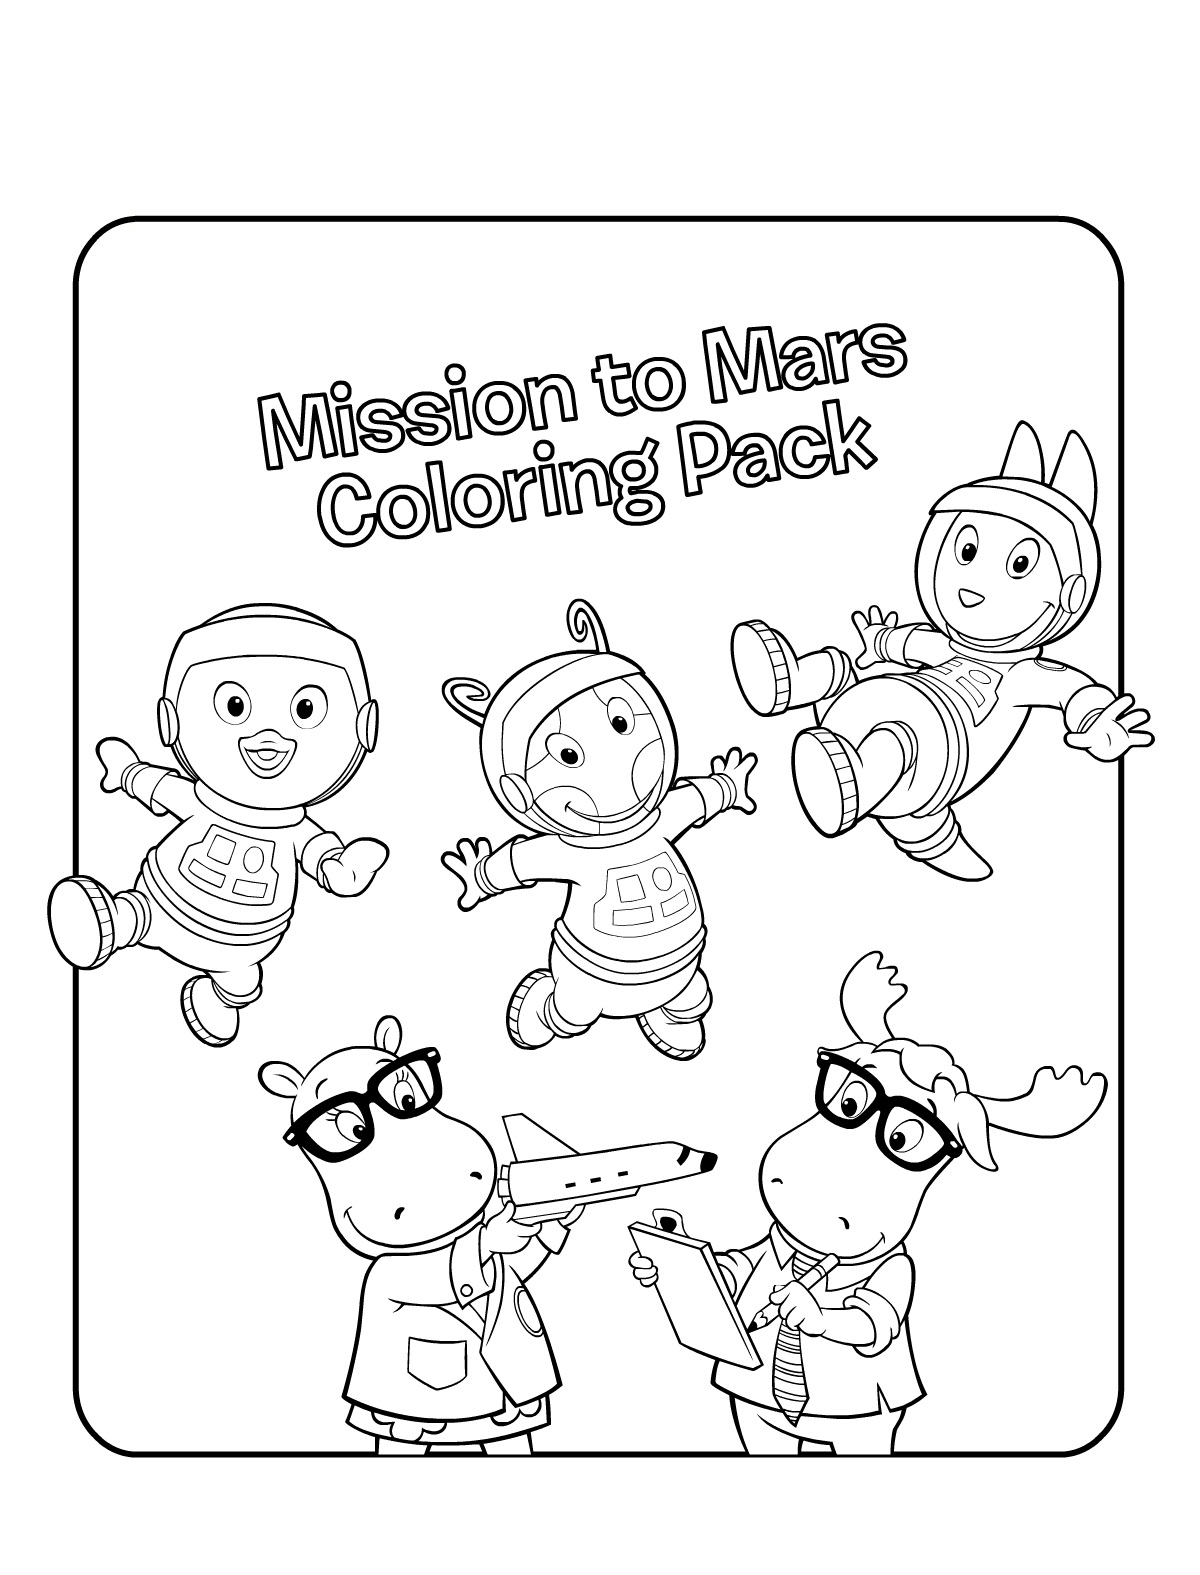 Printable Backyardigans Coloring Pages For Kids | 1575x1200